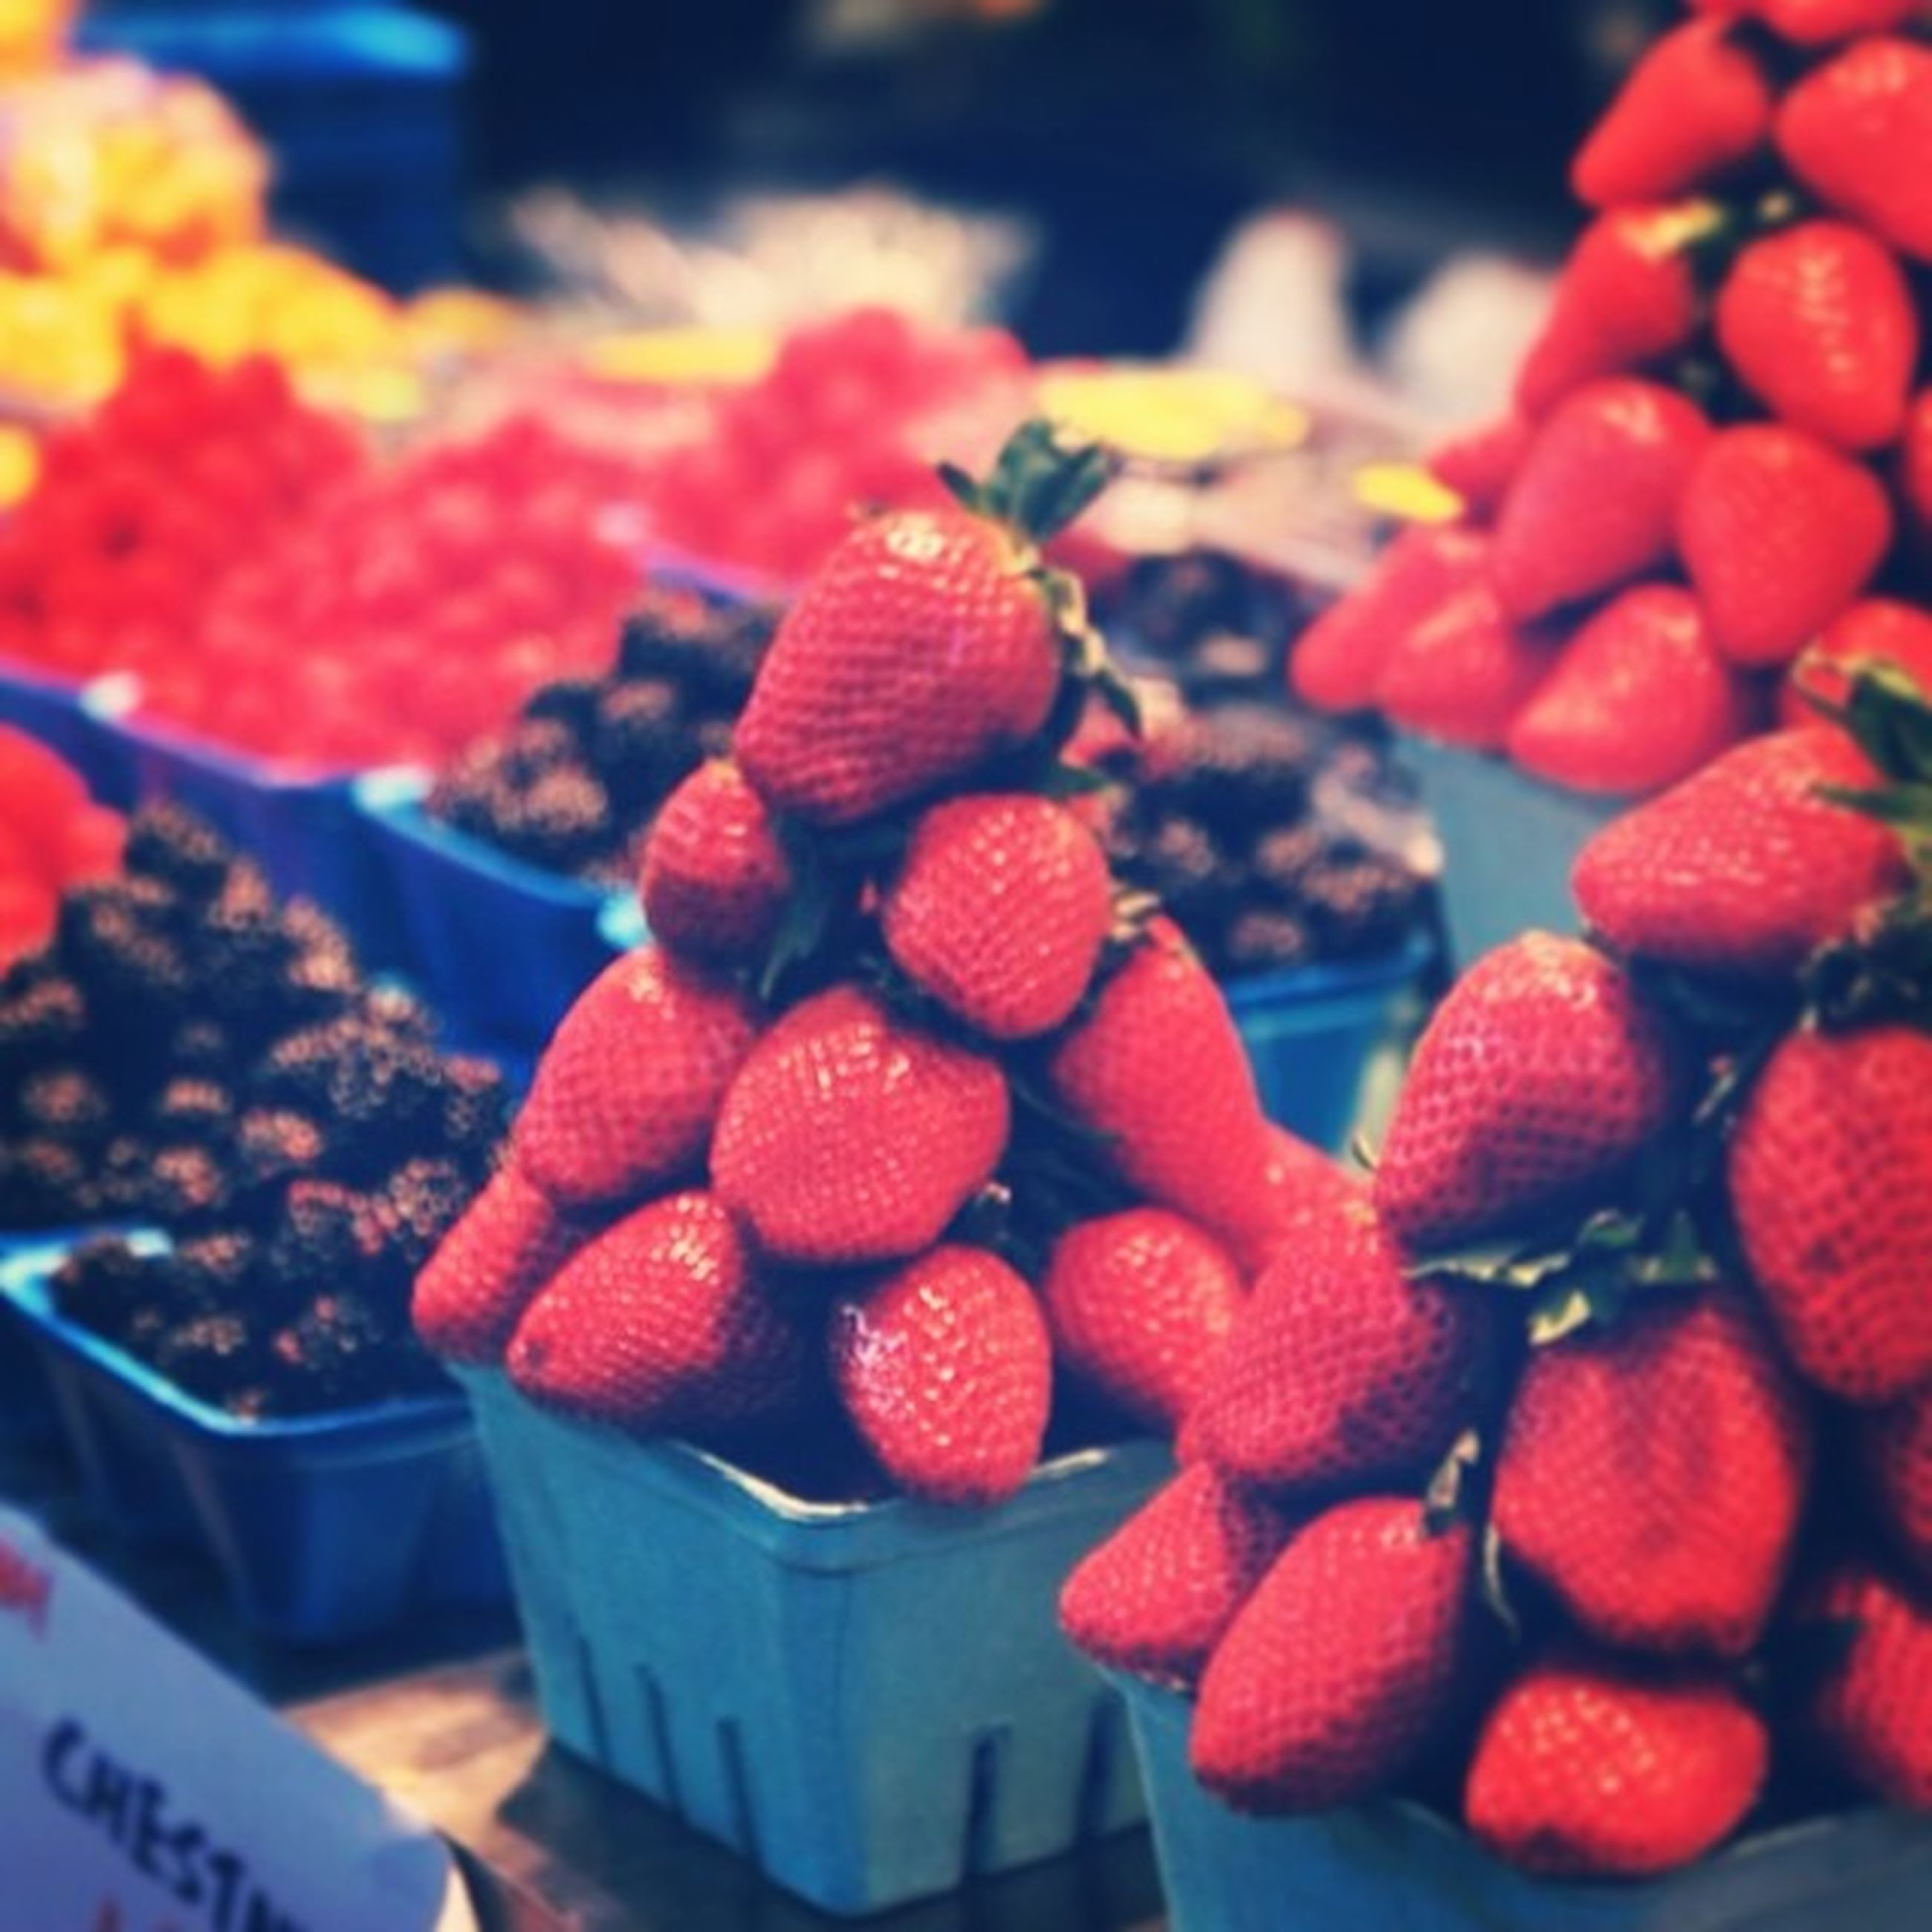 food and drink, fruit, food, freshness, healthy eating, red, berry fruit, ripe, large group of objects, abundance, focus on foreground, close-up, berry, strawberry, cherry, raspberry, grape, juicy, still life, selective focus